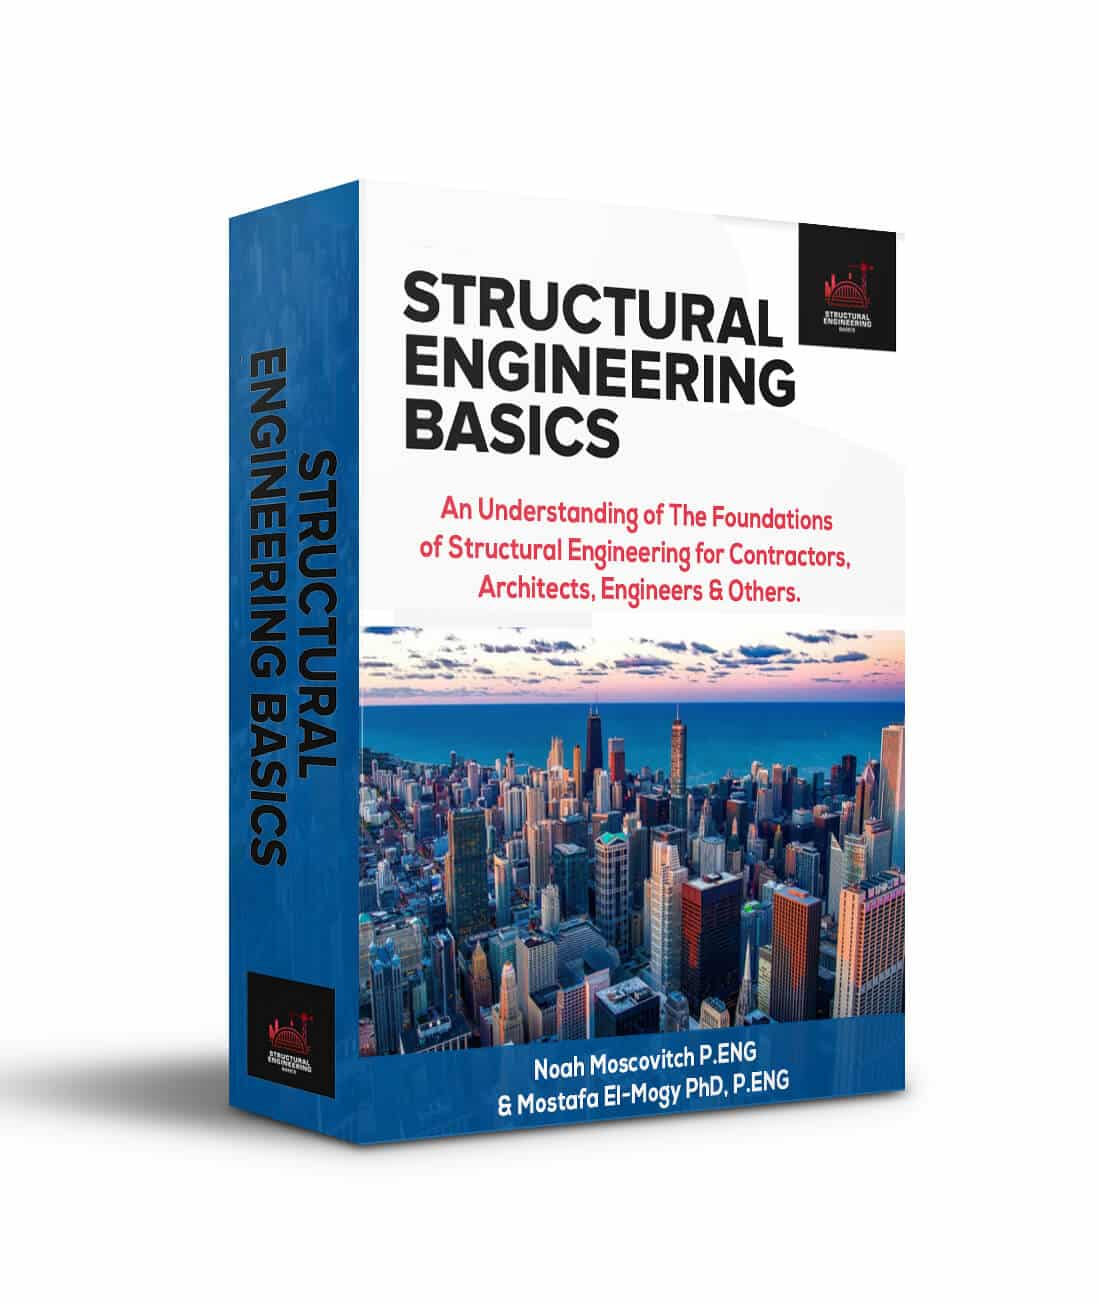 structural engineering basics online course